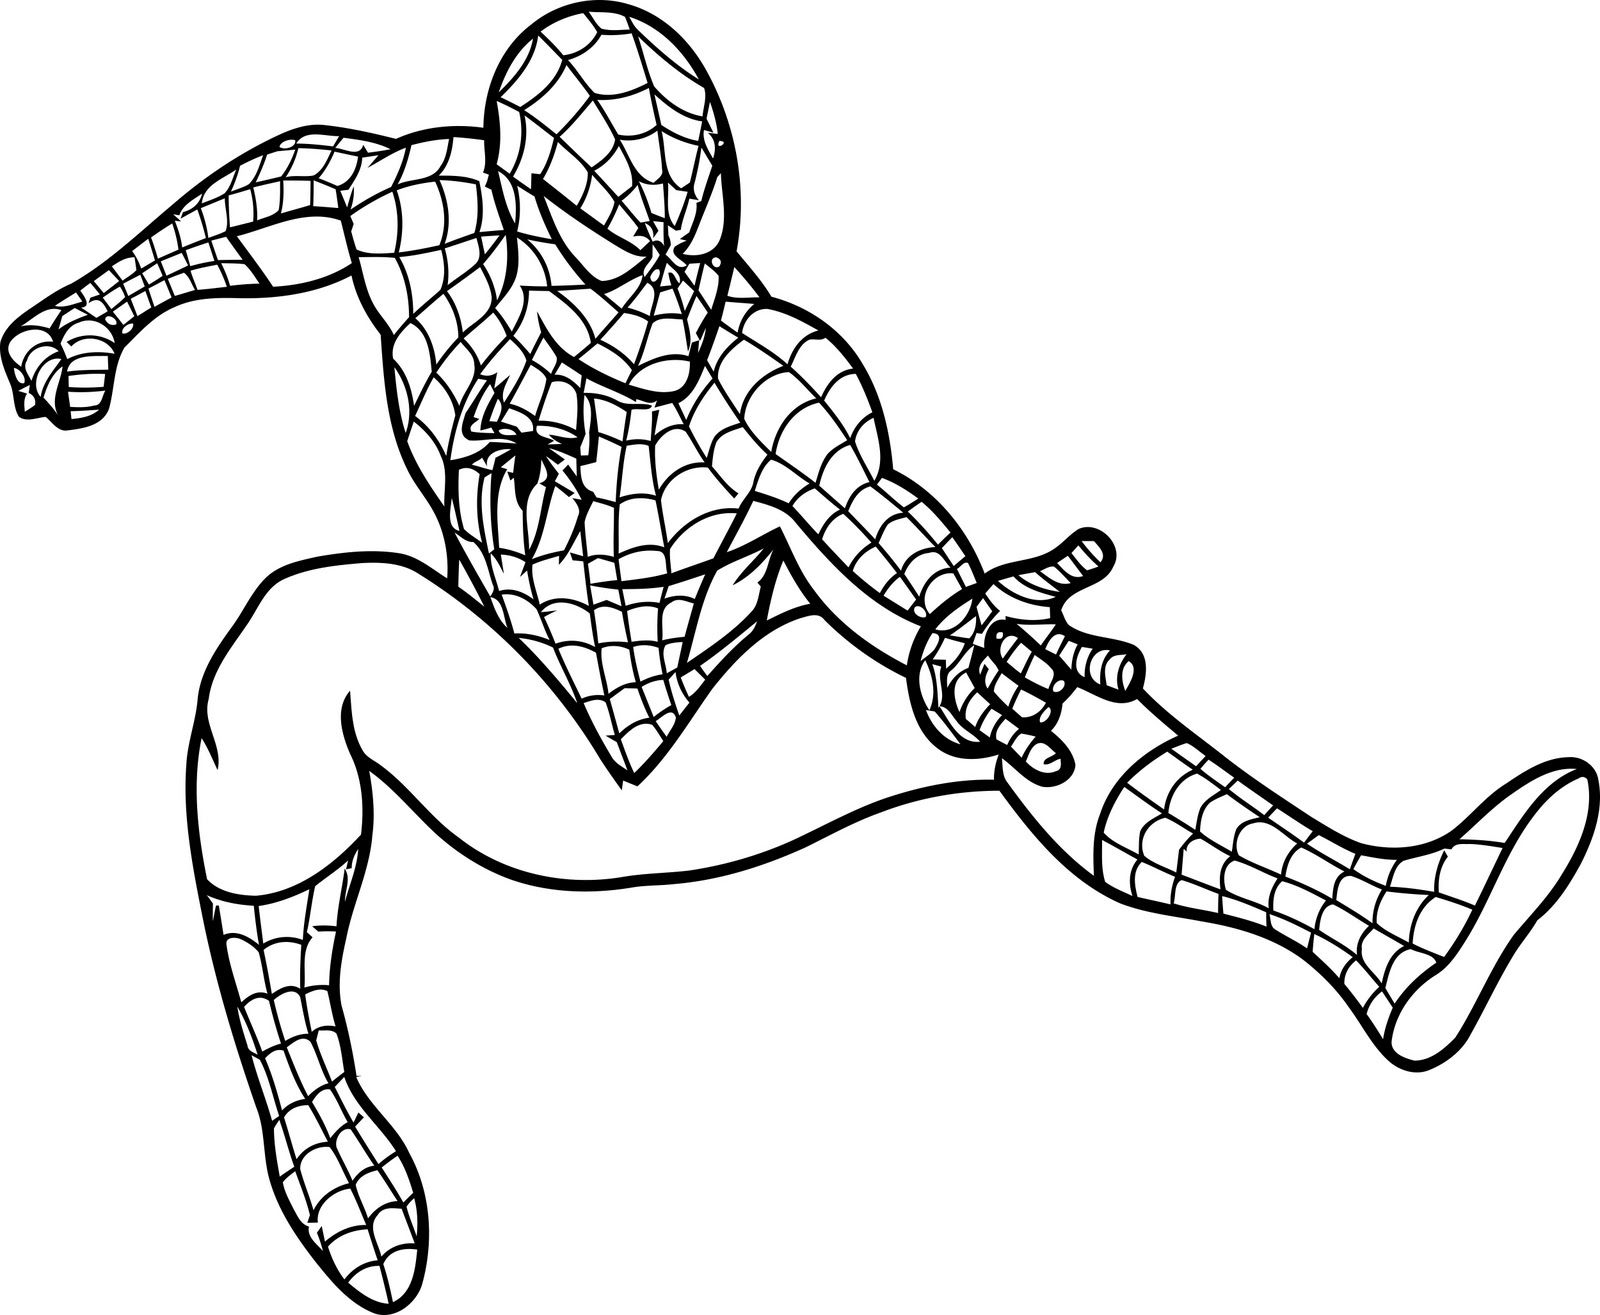 Free Printable Spiderman Coloring Pages For Kids | Pinterest ...